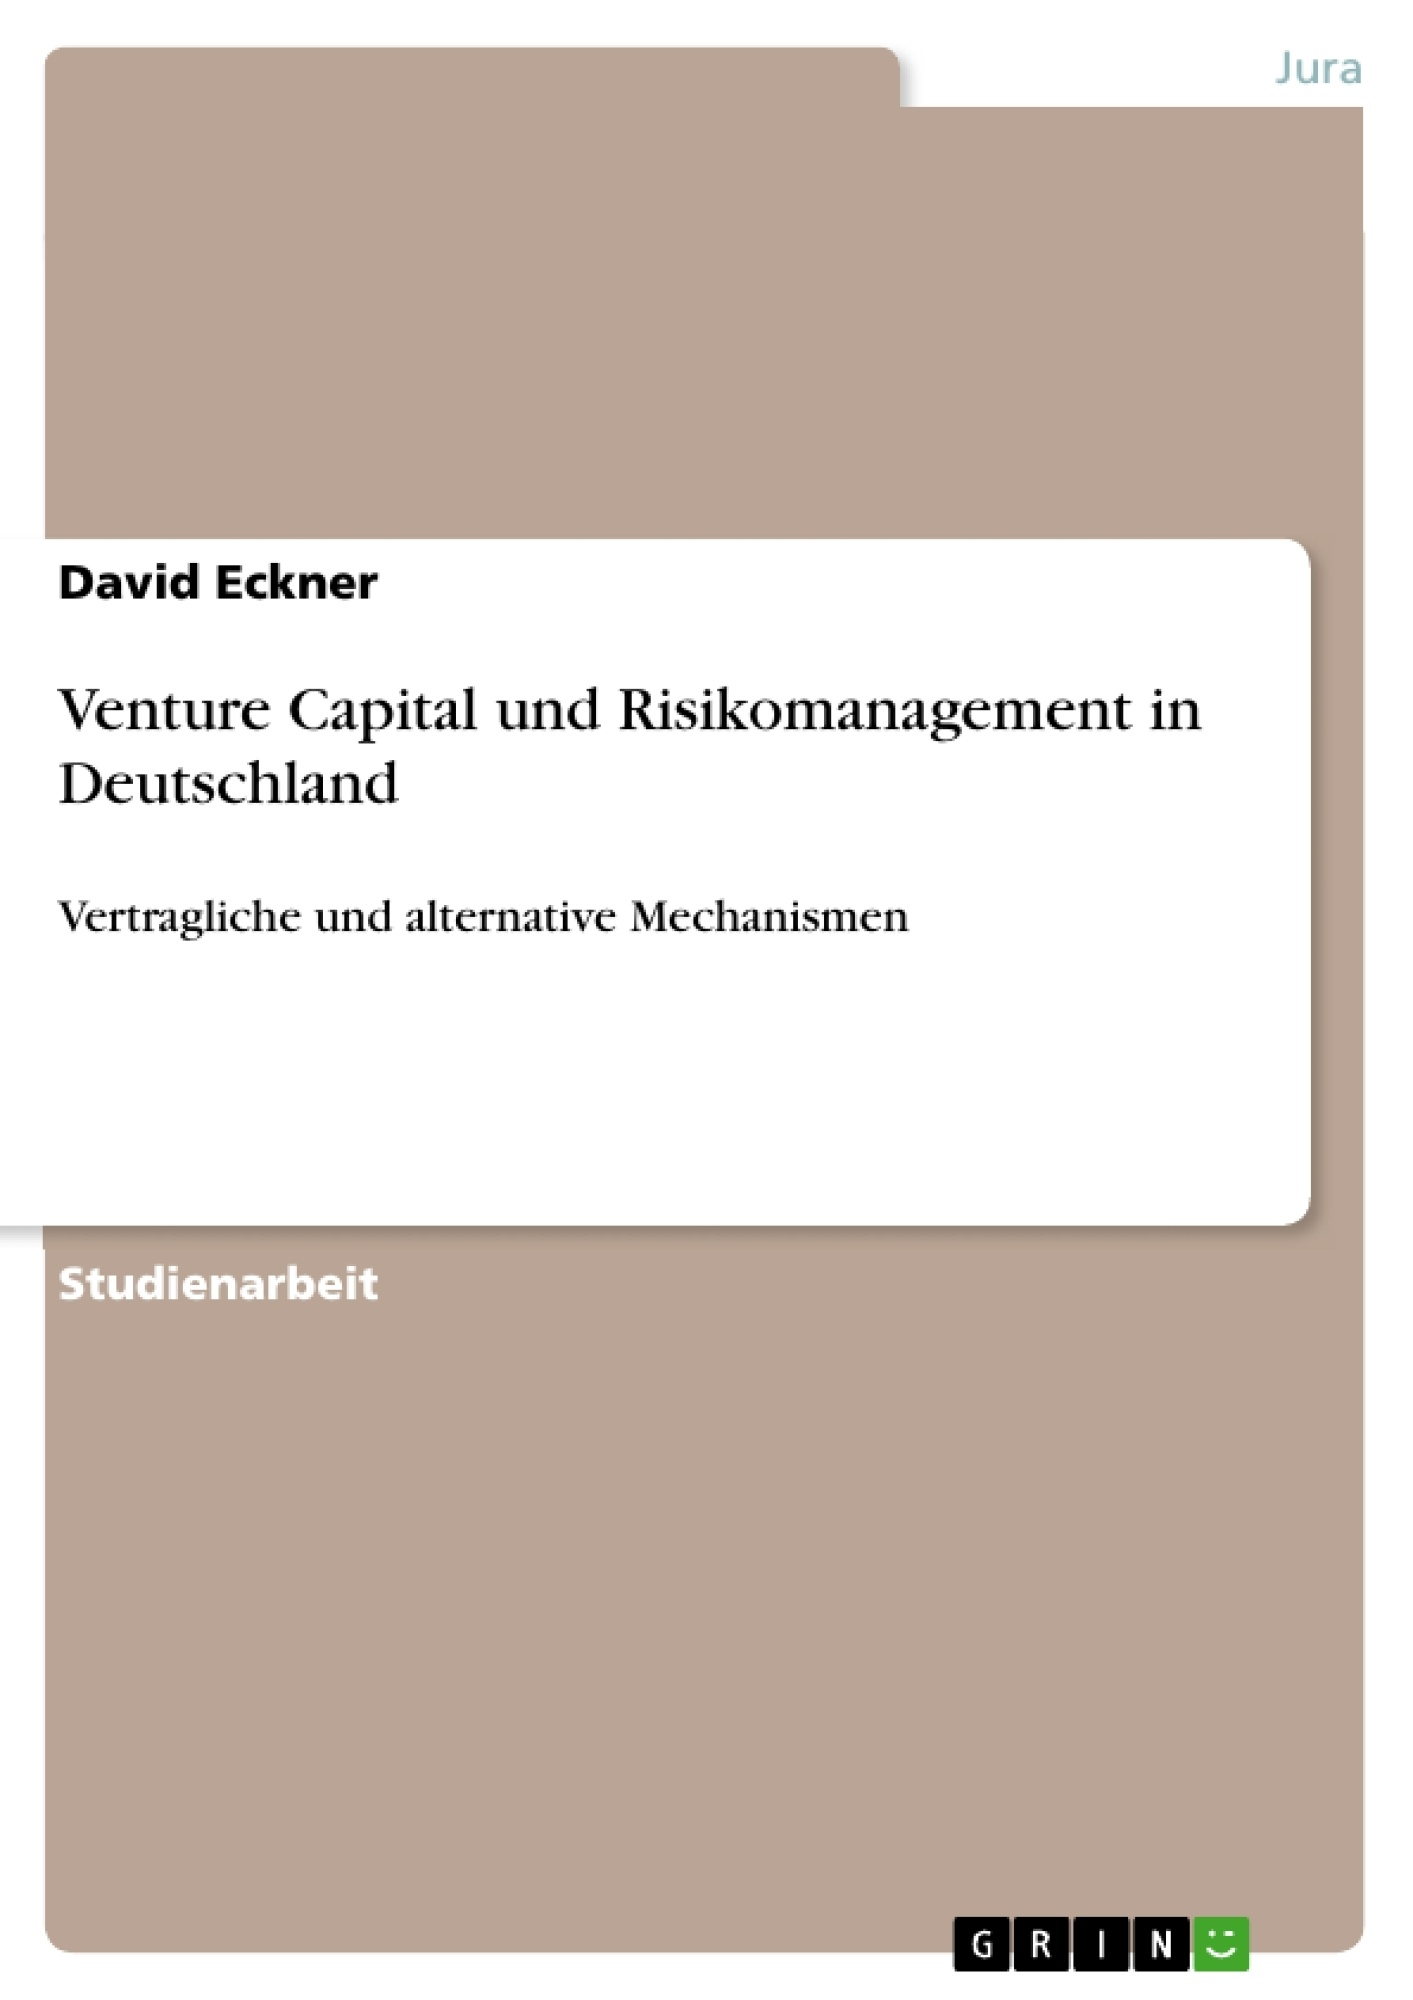 Titel: Venture Capital und Risikomanagement in Deutschland